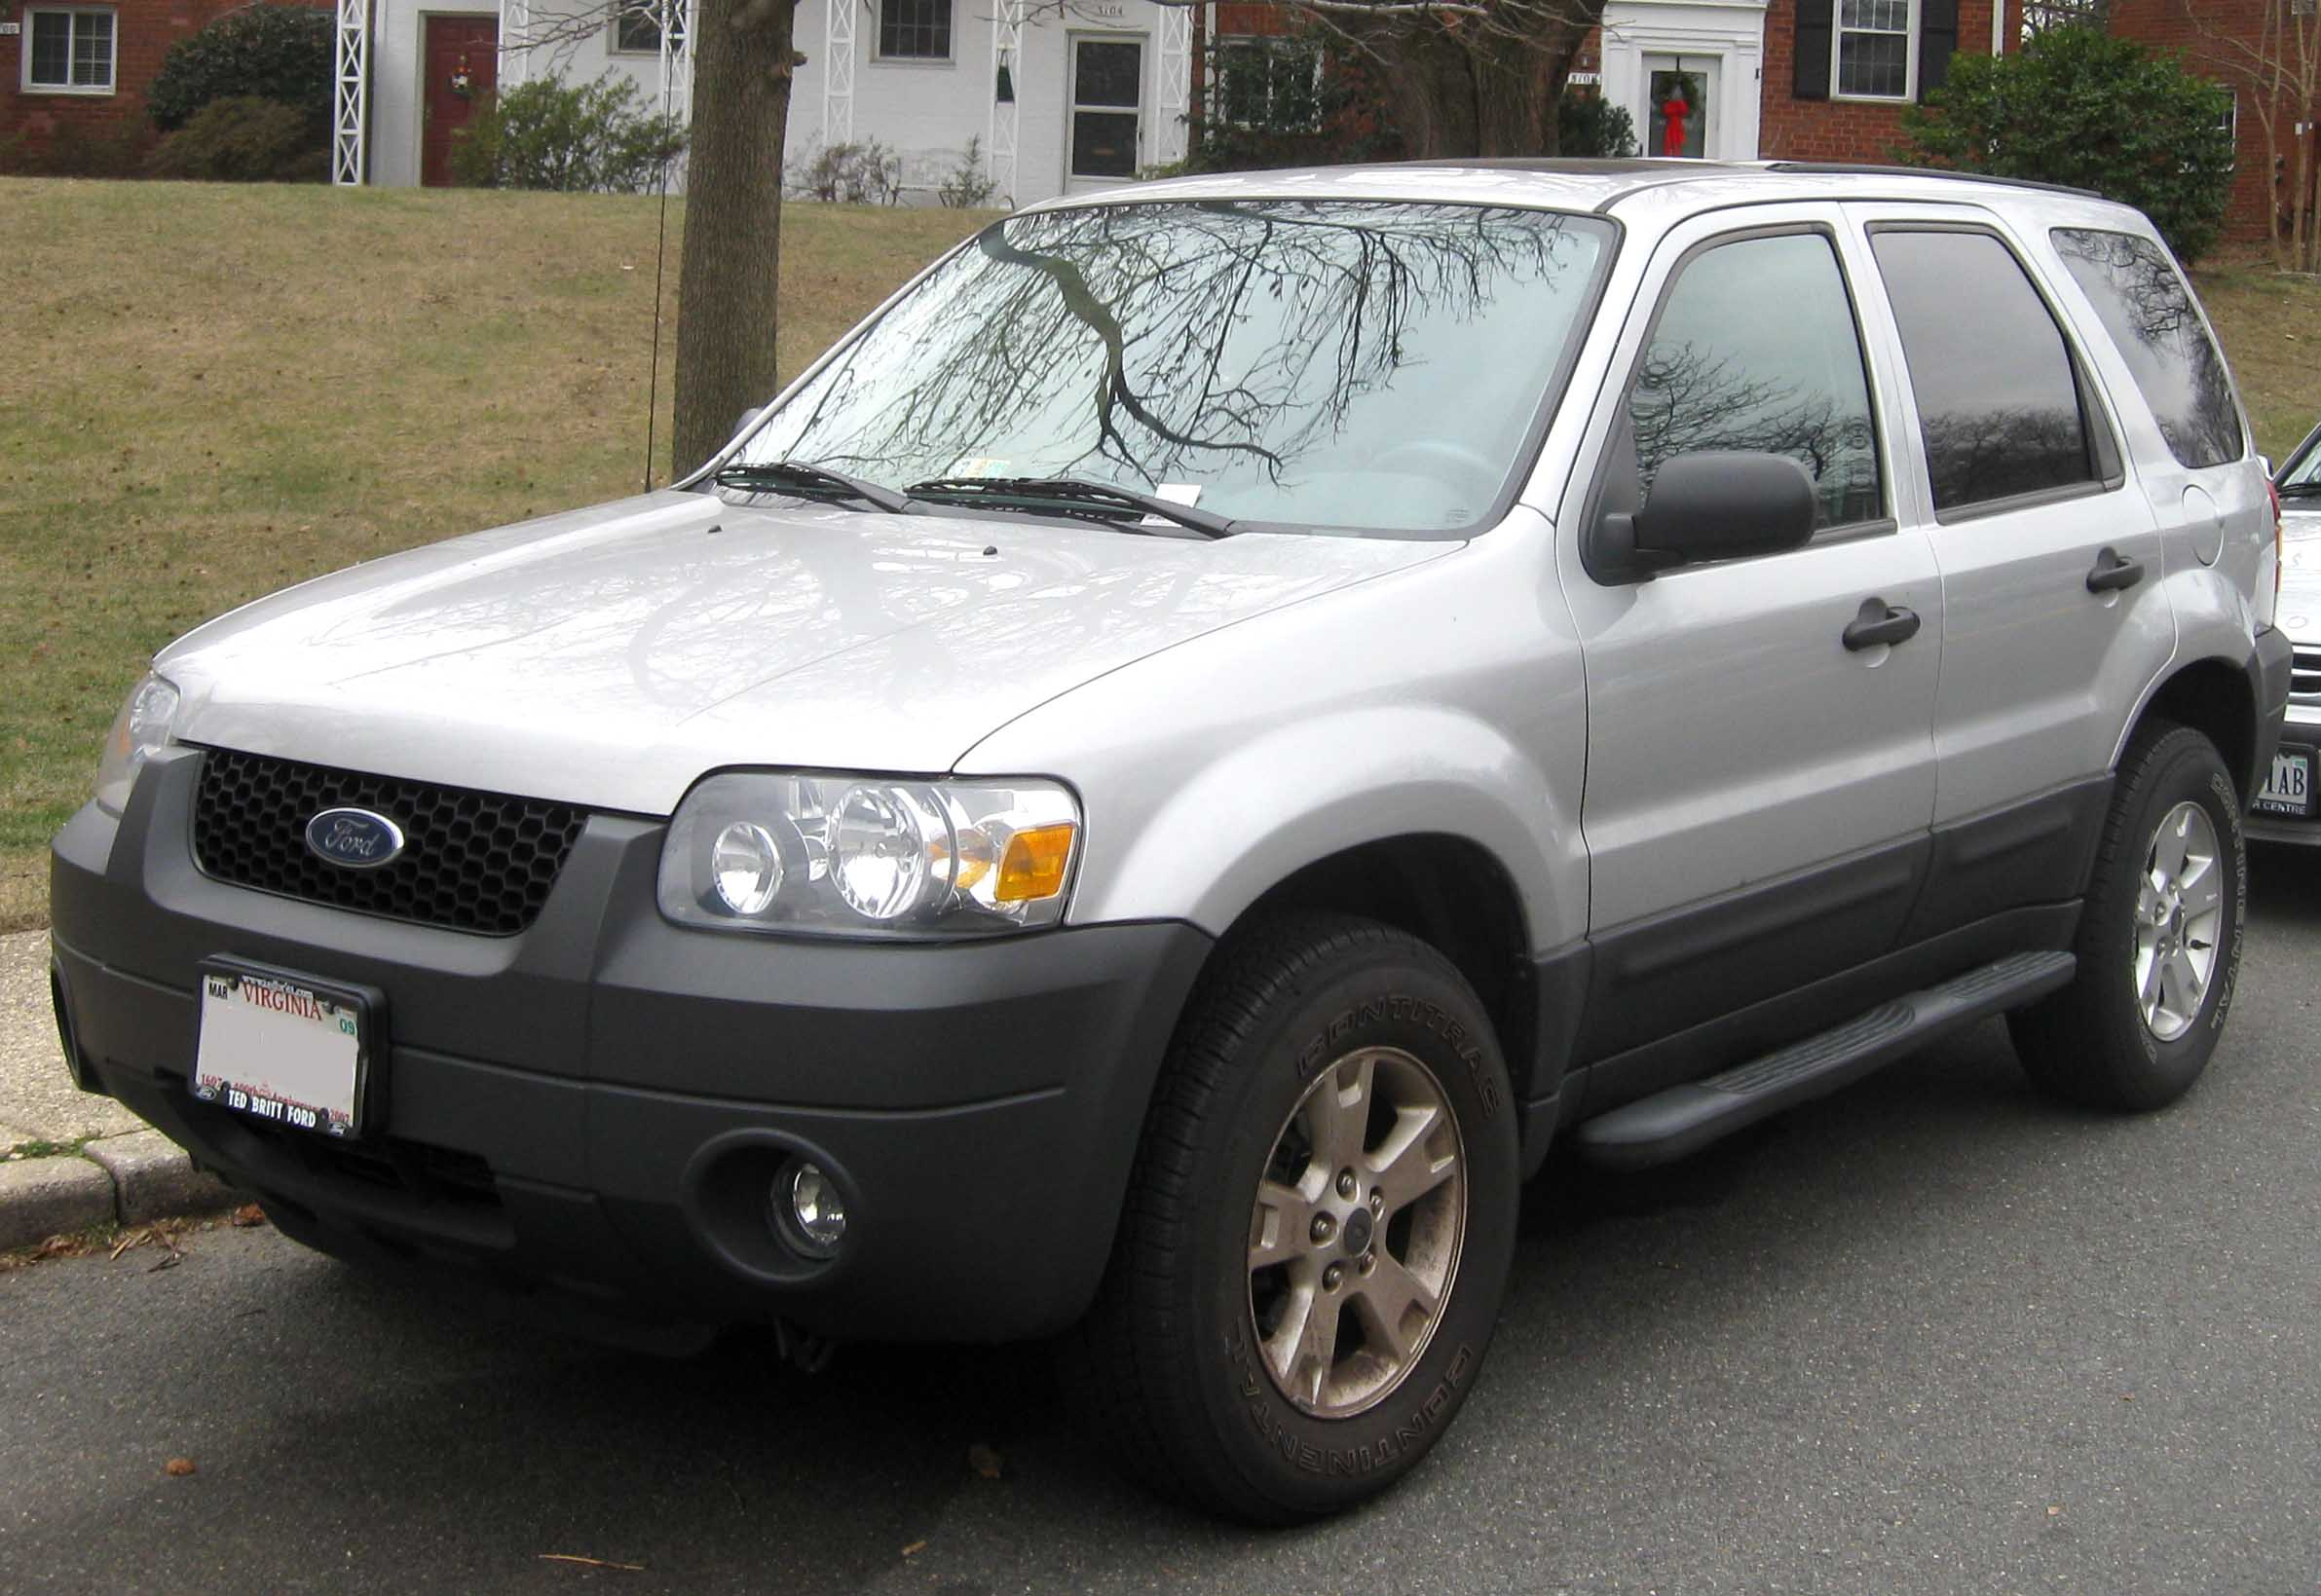 File:2005-2007 Ford Escape.jpg - Wikimedia Commons